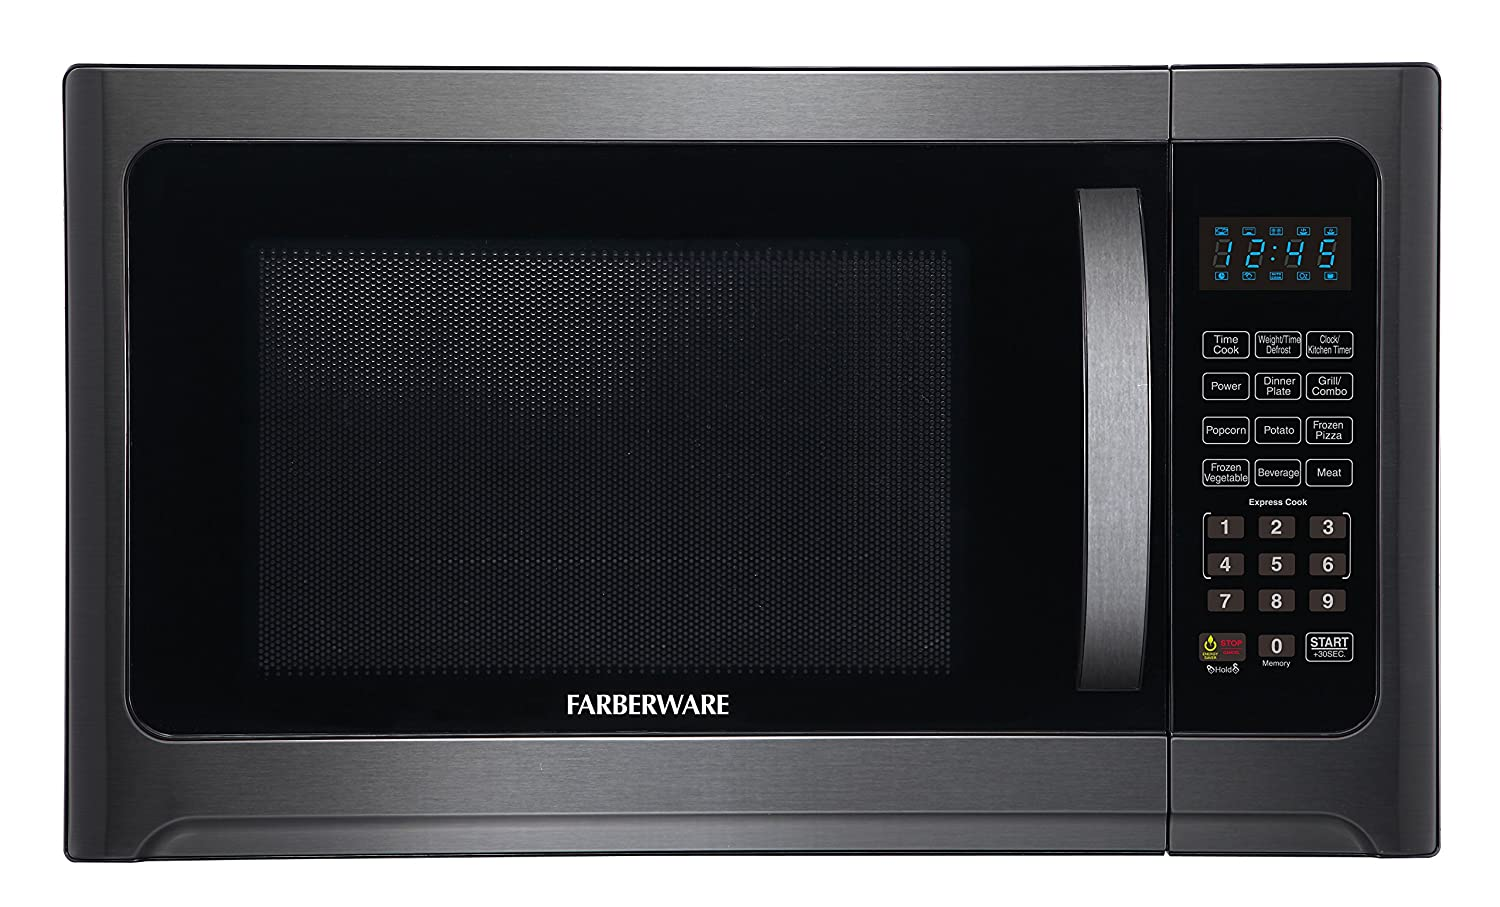 Farberware Black FMO12AHTBSG 1.2 Cu. Ft. 1100-Watt Microwave Oven with Grill with ECO Mode and LED Lighting, Black Stainless Steel